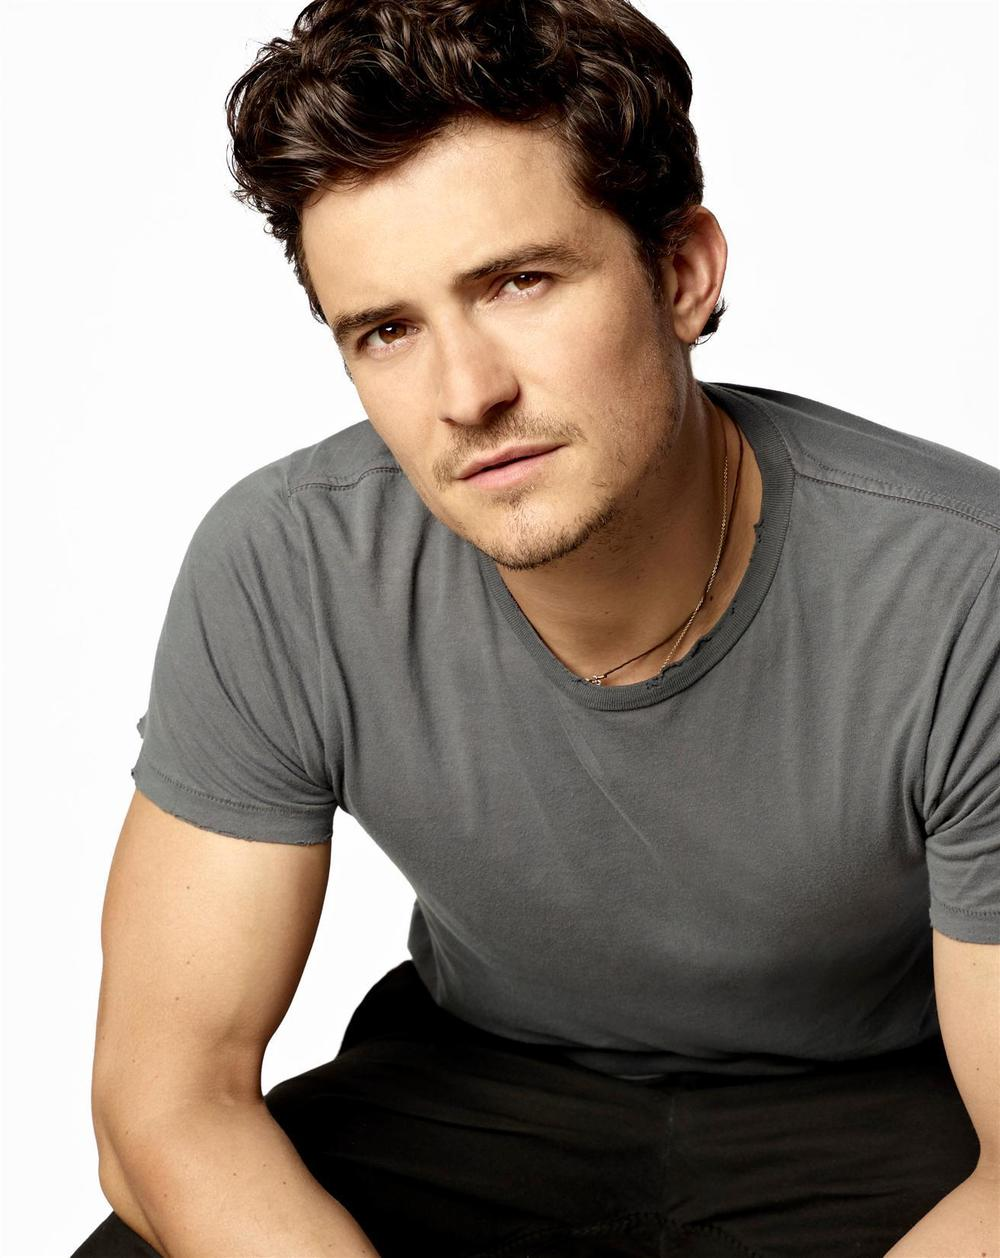 Orlando Bloom press shoot by Carter Smith — SHAY NIELSEN CASTING Orlando Bloom